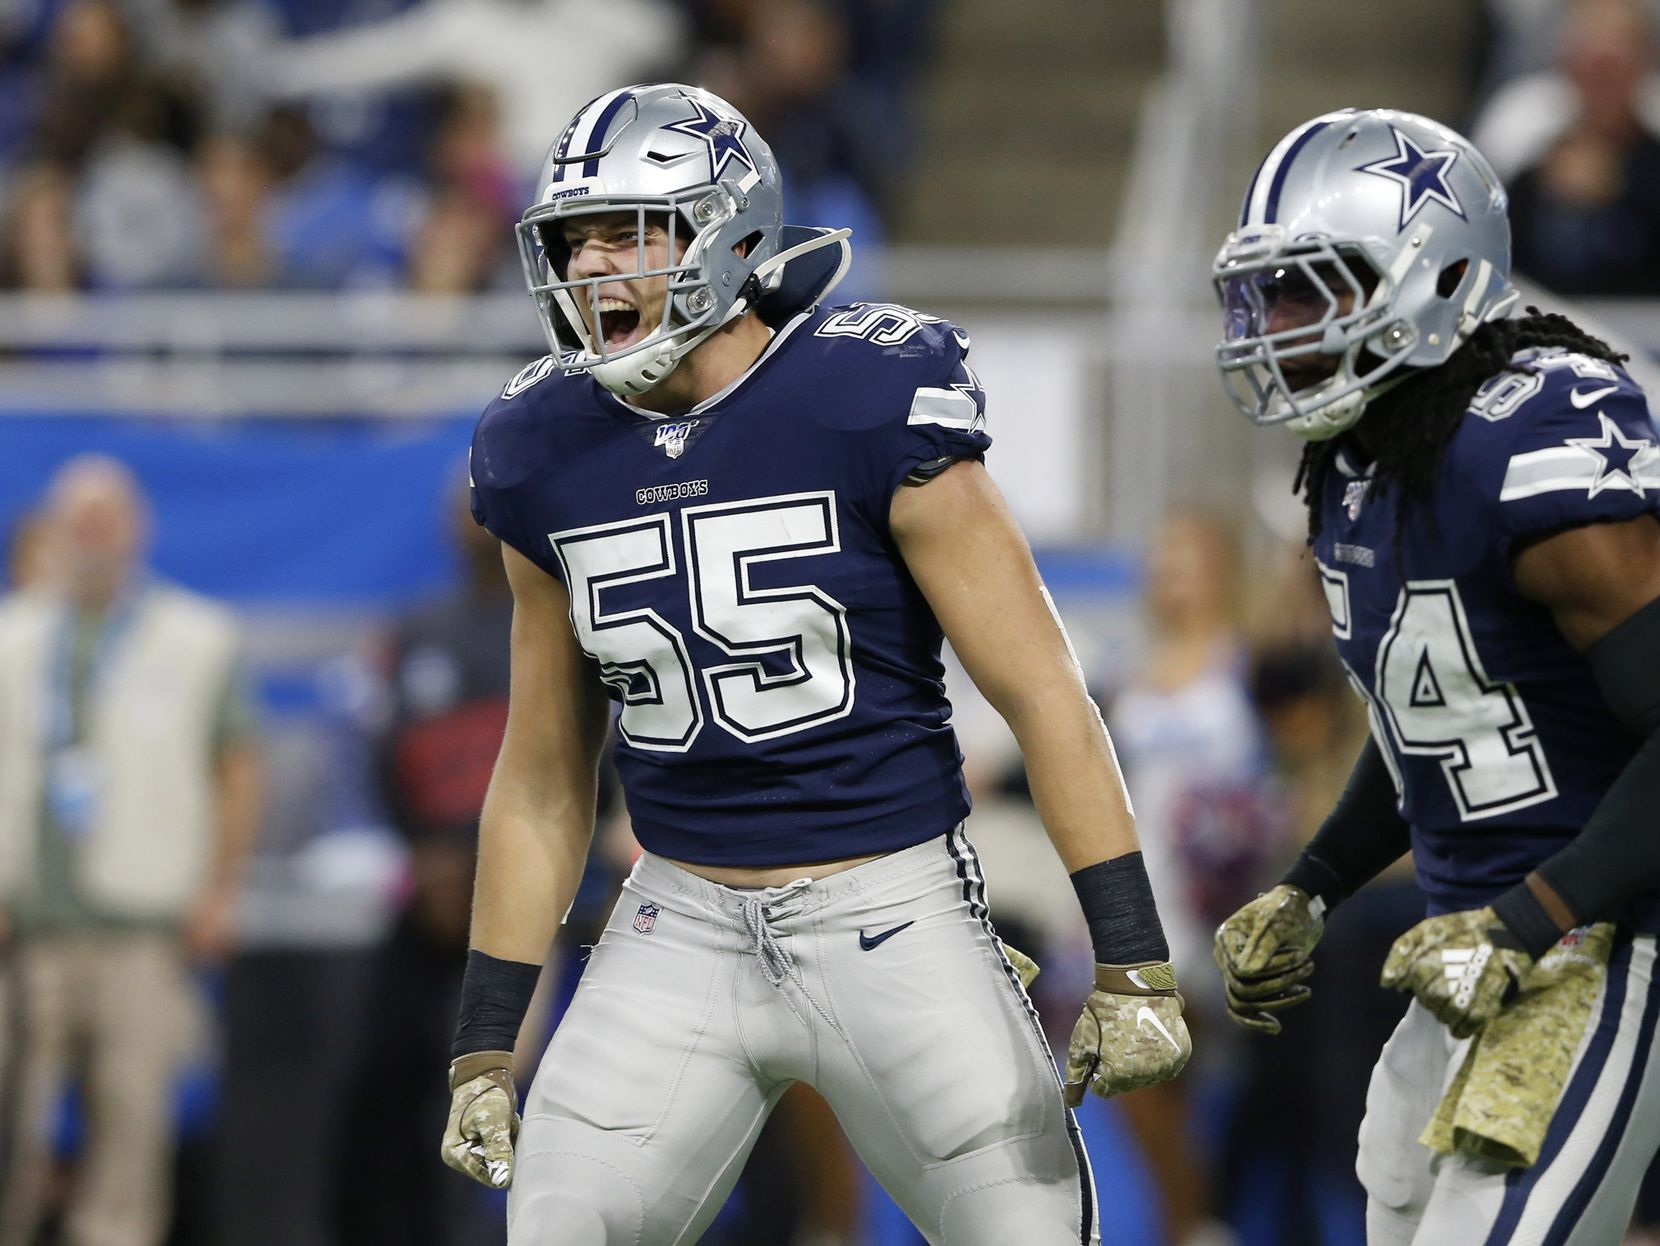 Dallas Cowboys outside linebacker Leighton Vander Esch (55) celebrates after a defensive stop in a game against the Detroit Lions during the first half of play at Ford Field in Detroit, on Sunday, November 17, 2019.